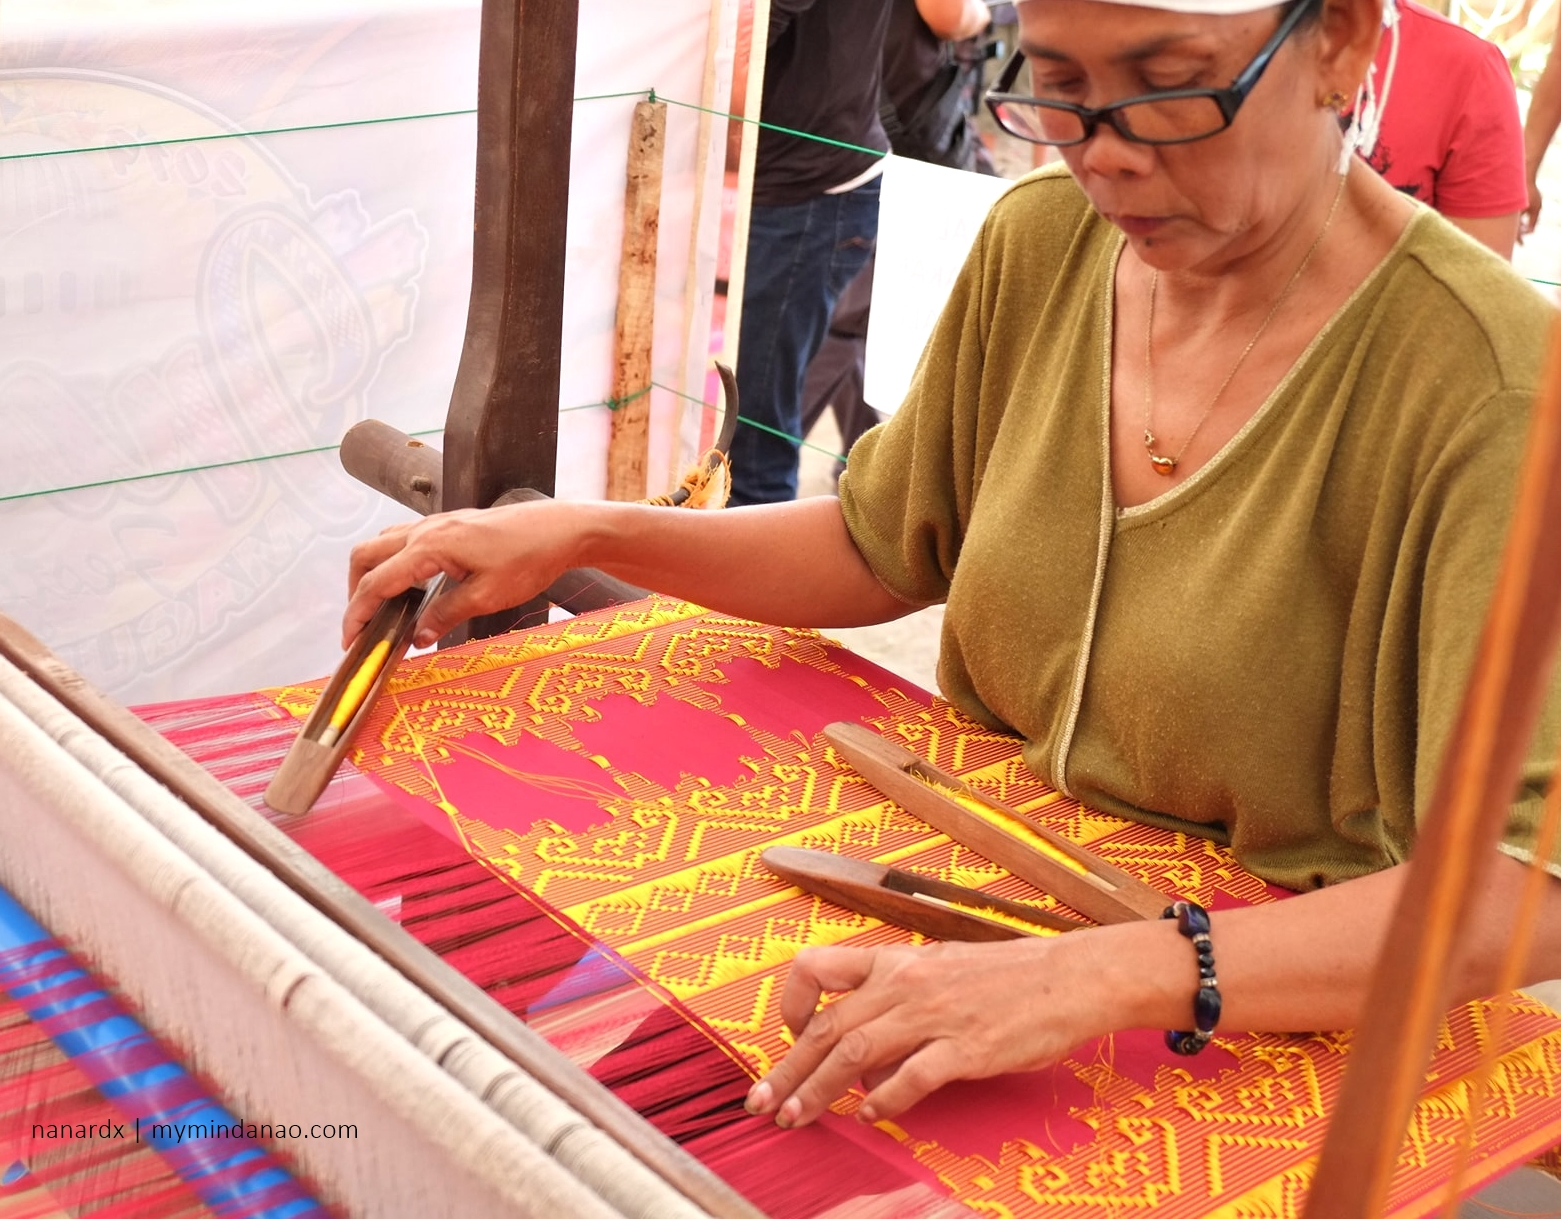 Inaul Festival, celebrating the traditional art of Inaul weaving